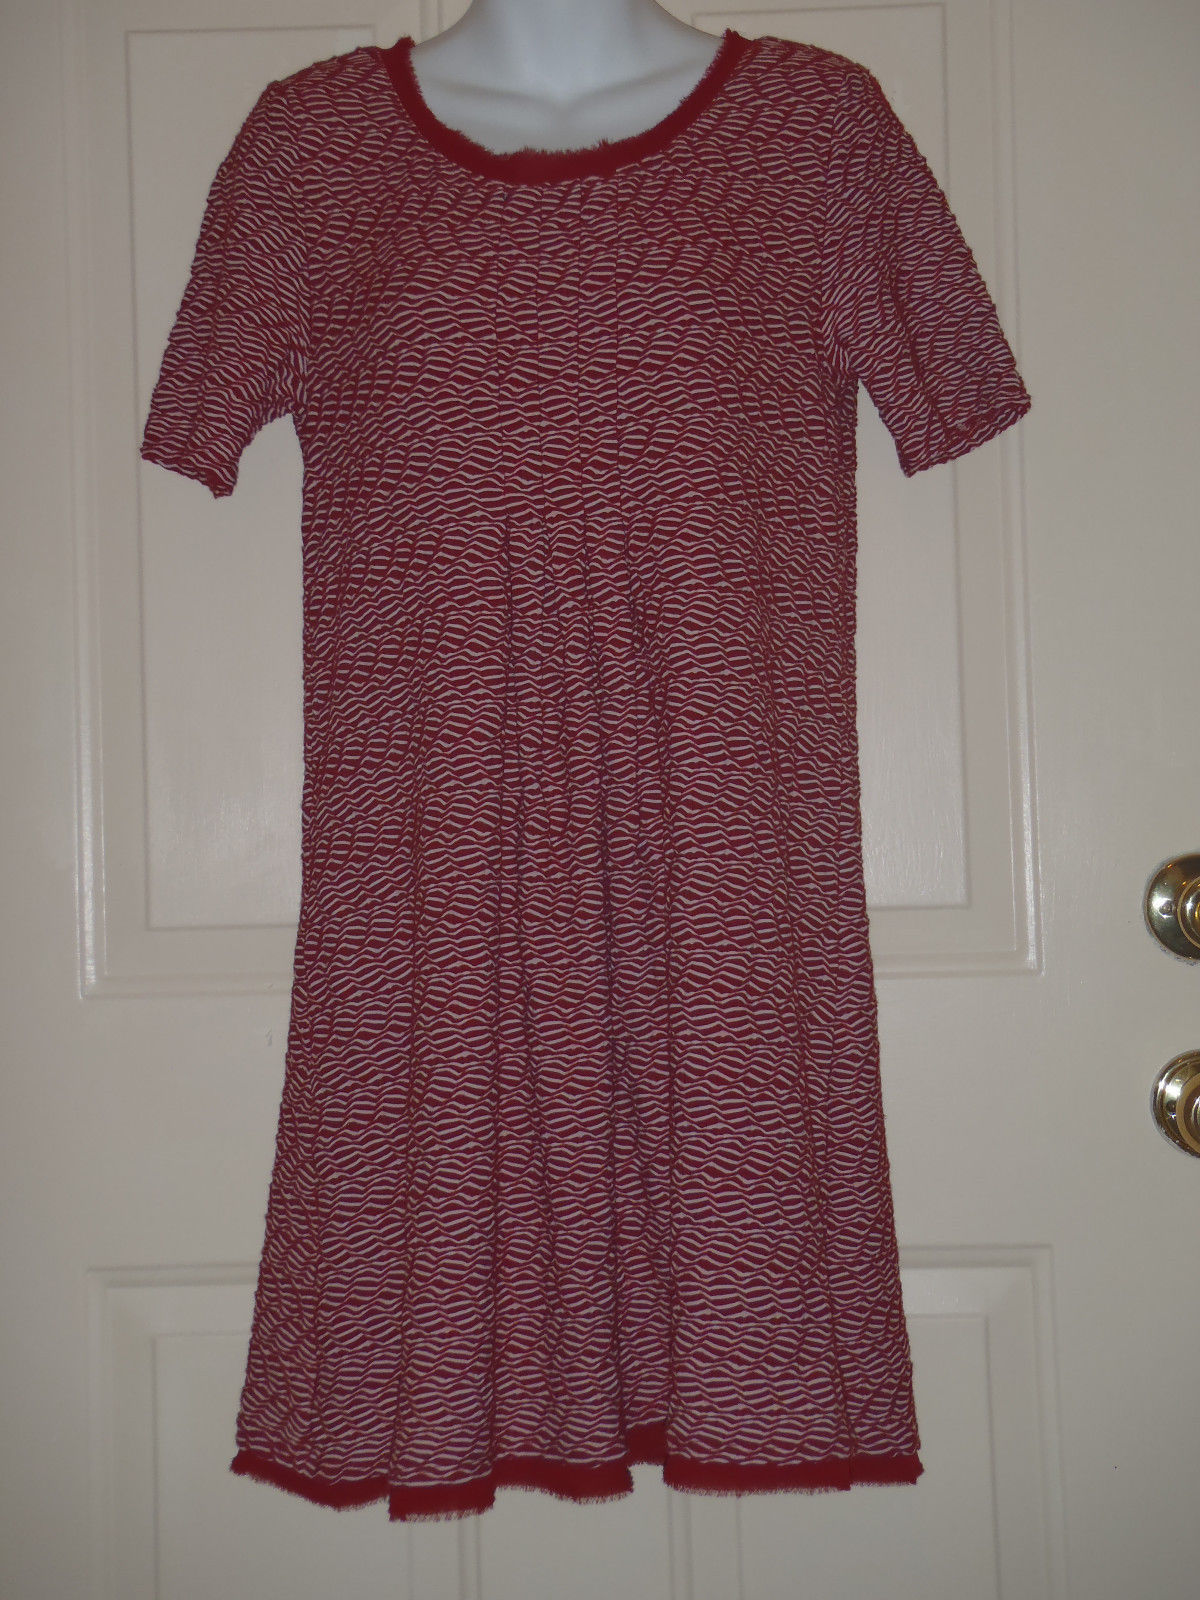 cb8314ff4953 Maeve Anthropologie Maroon White Squiggles and similar items